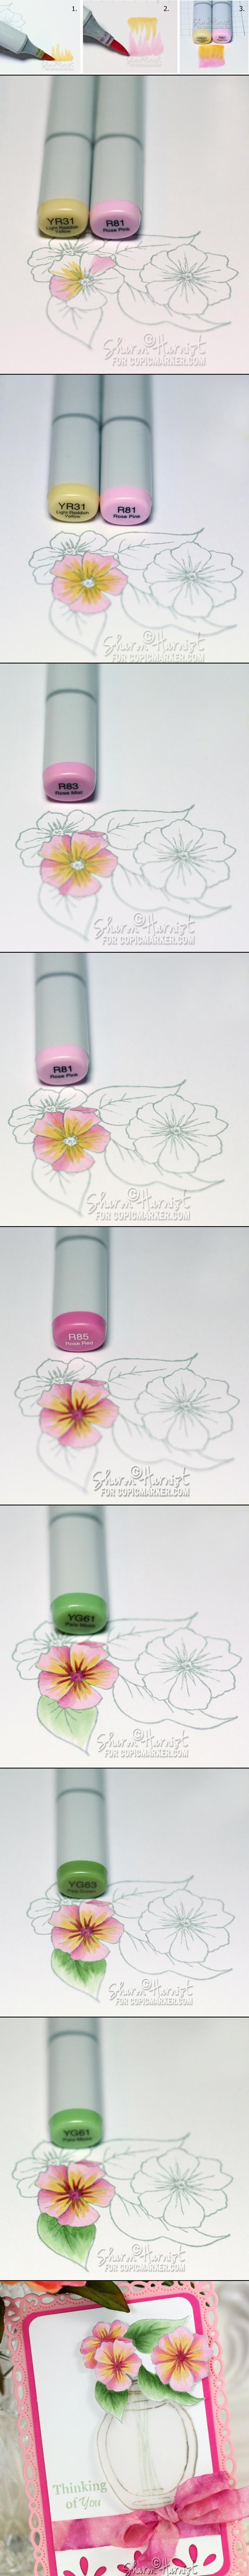 Copic Flowers and Feathered Blending